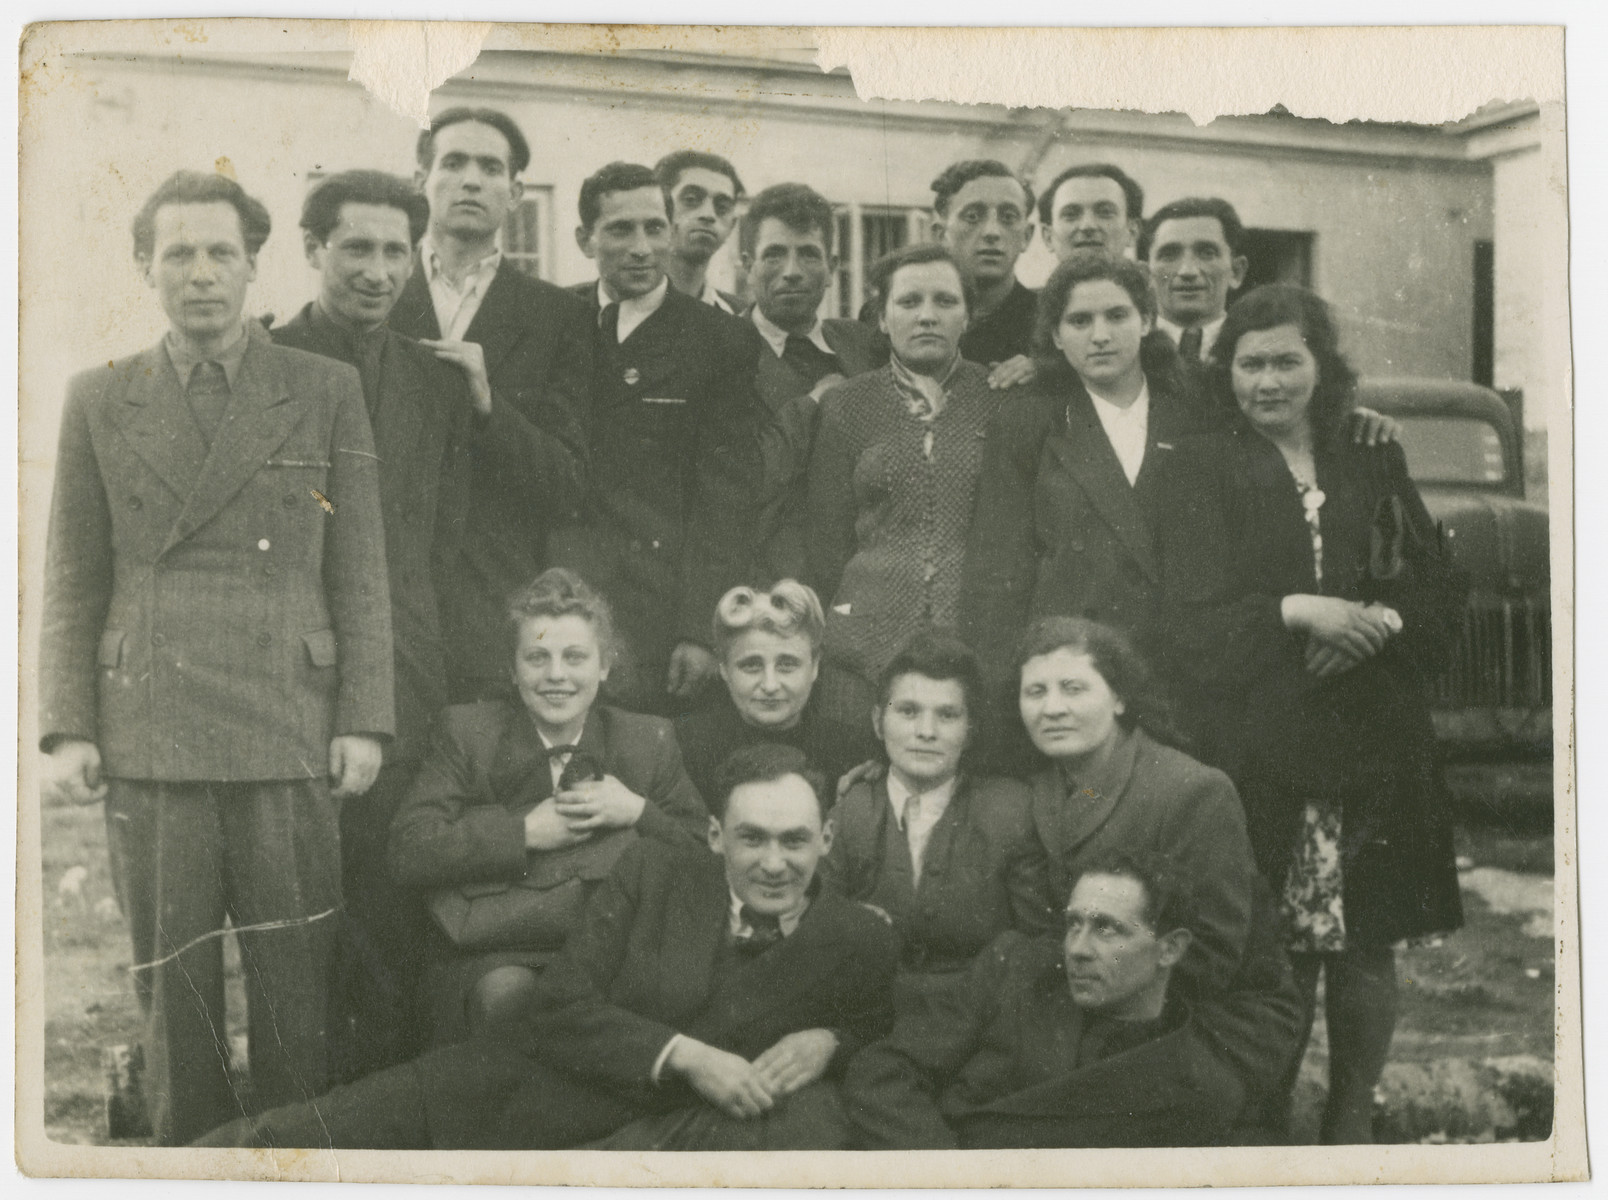 Postwar photograph of partisans from the Kovno ghetto.  The photo was probably taken in Trakai.  Bottom row:  Upniczki, Meyer Grinberg Second row seating: Mira Vainer Joels, ?, Chaya Smuilova, [Sara Gordon possibly]. Standing: Naum Endlin, LolikJoels, the tall man was a non-Jewish Communist who assisted the partisans and became the second husband of Chaya Smuilova and the mayor of Trakai, Simon Bloch, Moshe Magidowitz , Chone Kagan, Alte Borochovitch Tepper, Riva Bloch, Henela ?, Eliezer Zilber, Faitelson, and ?